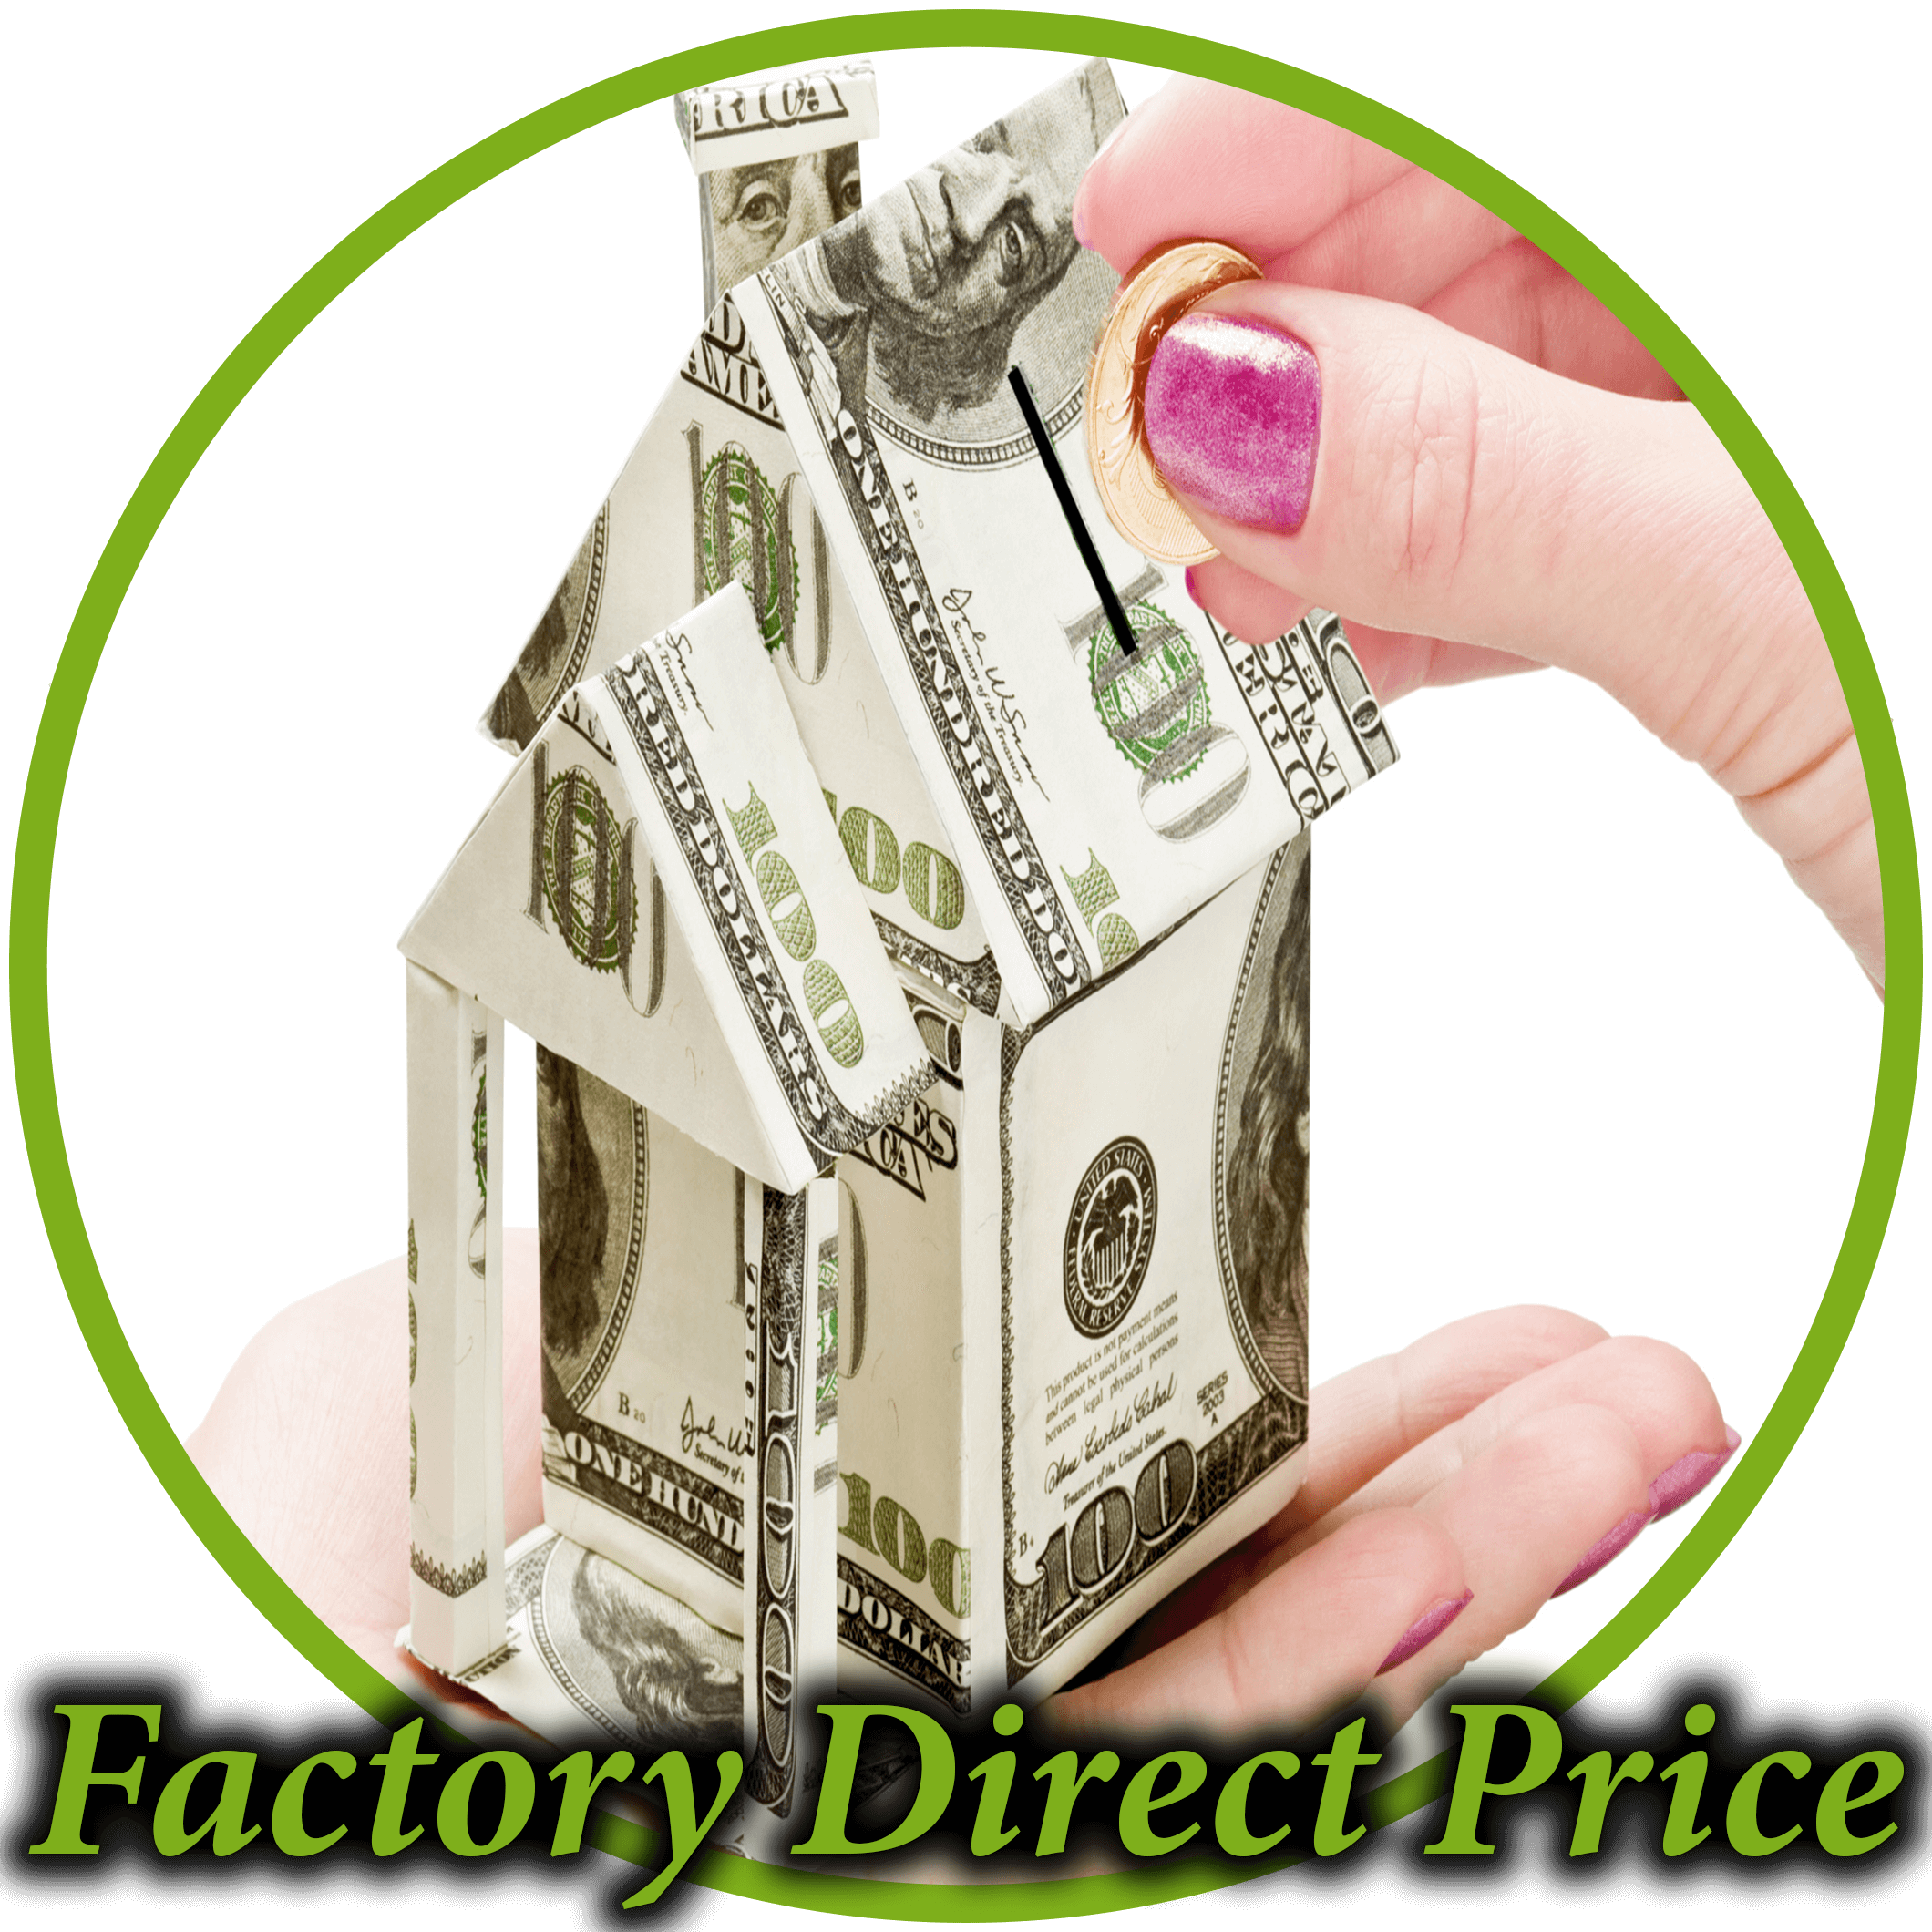 factory direct price.png